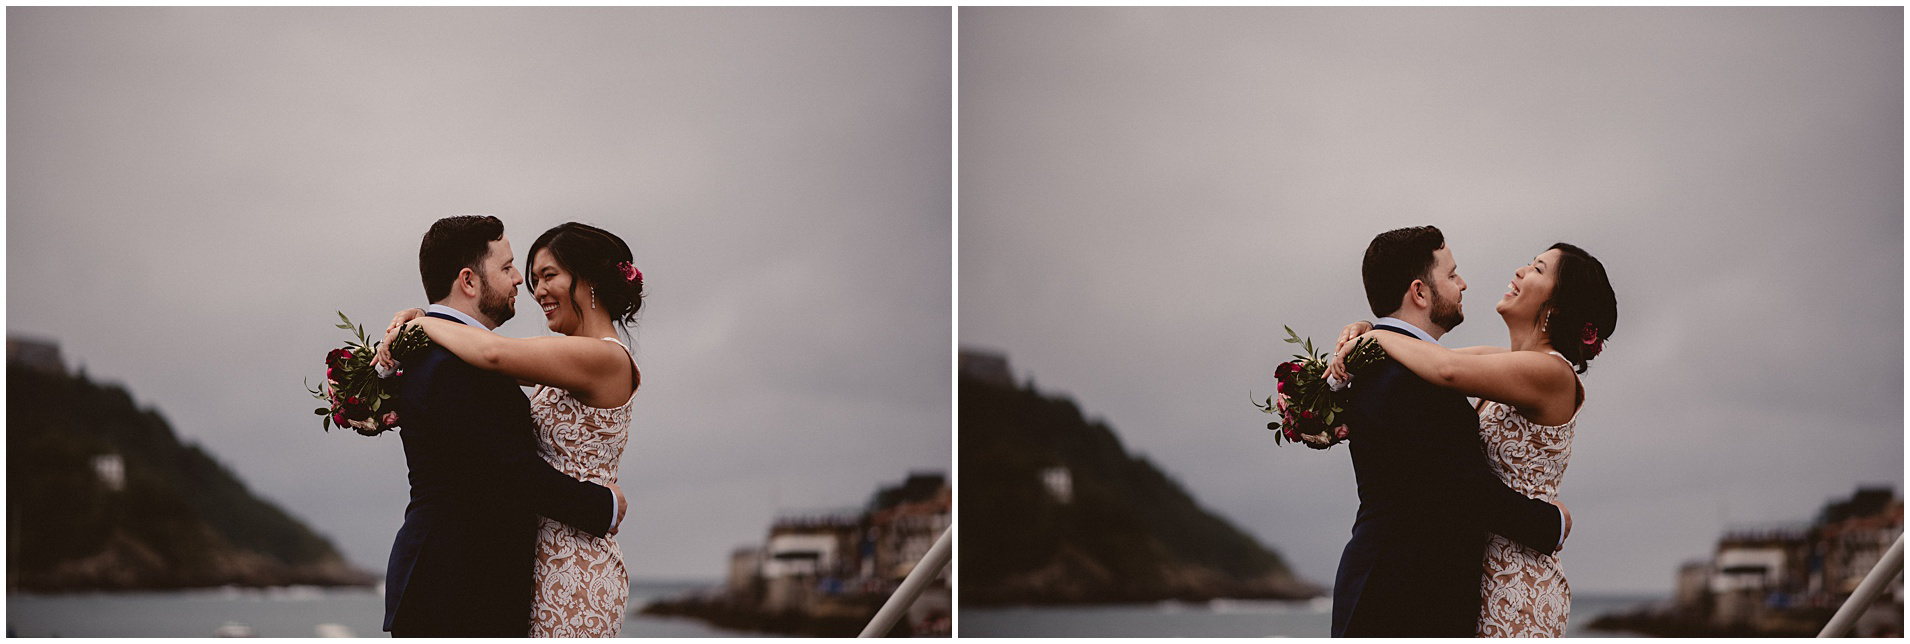 Brian & Julia - Destination wedding in San Sebastián  - Elopement in San Sebastian- ARTEFOTO59.jpg